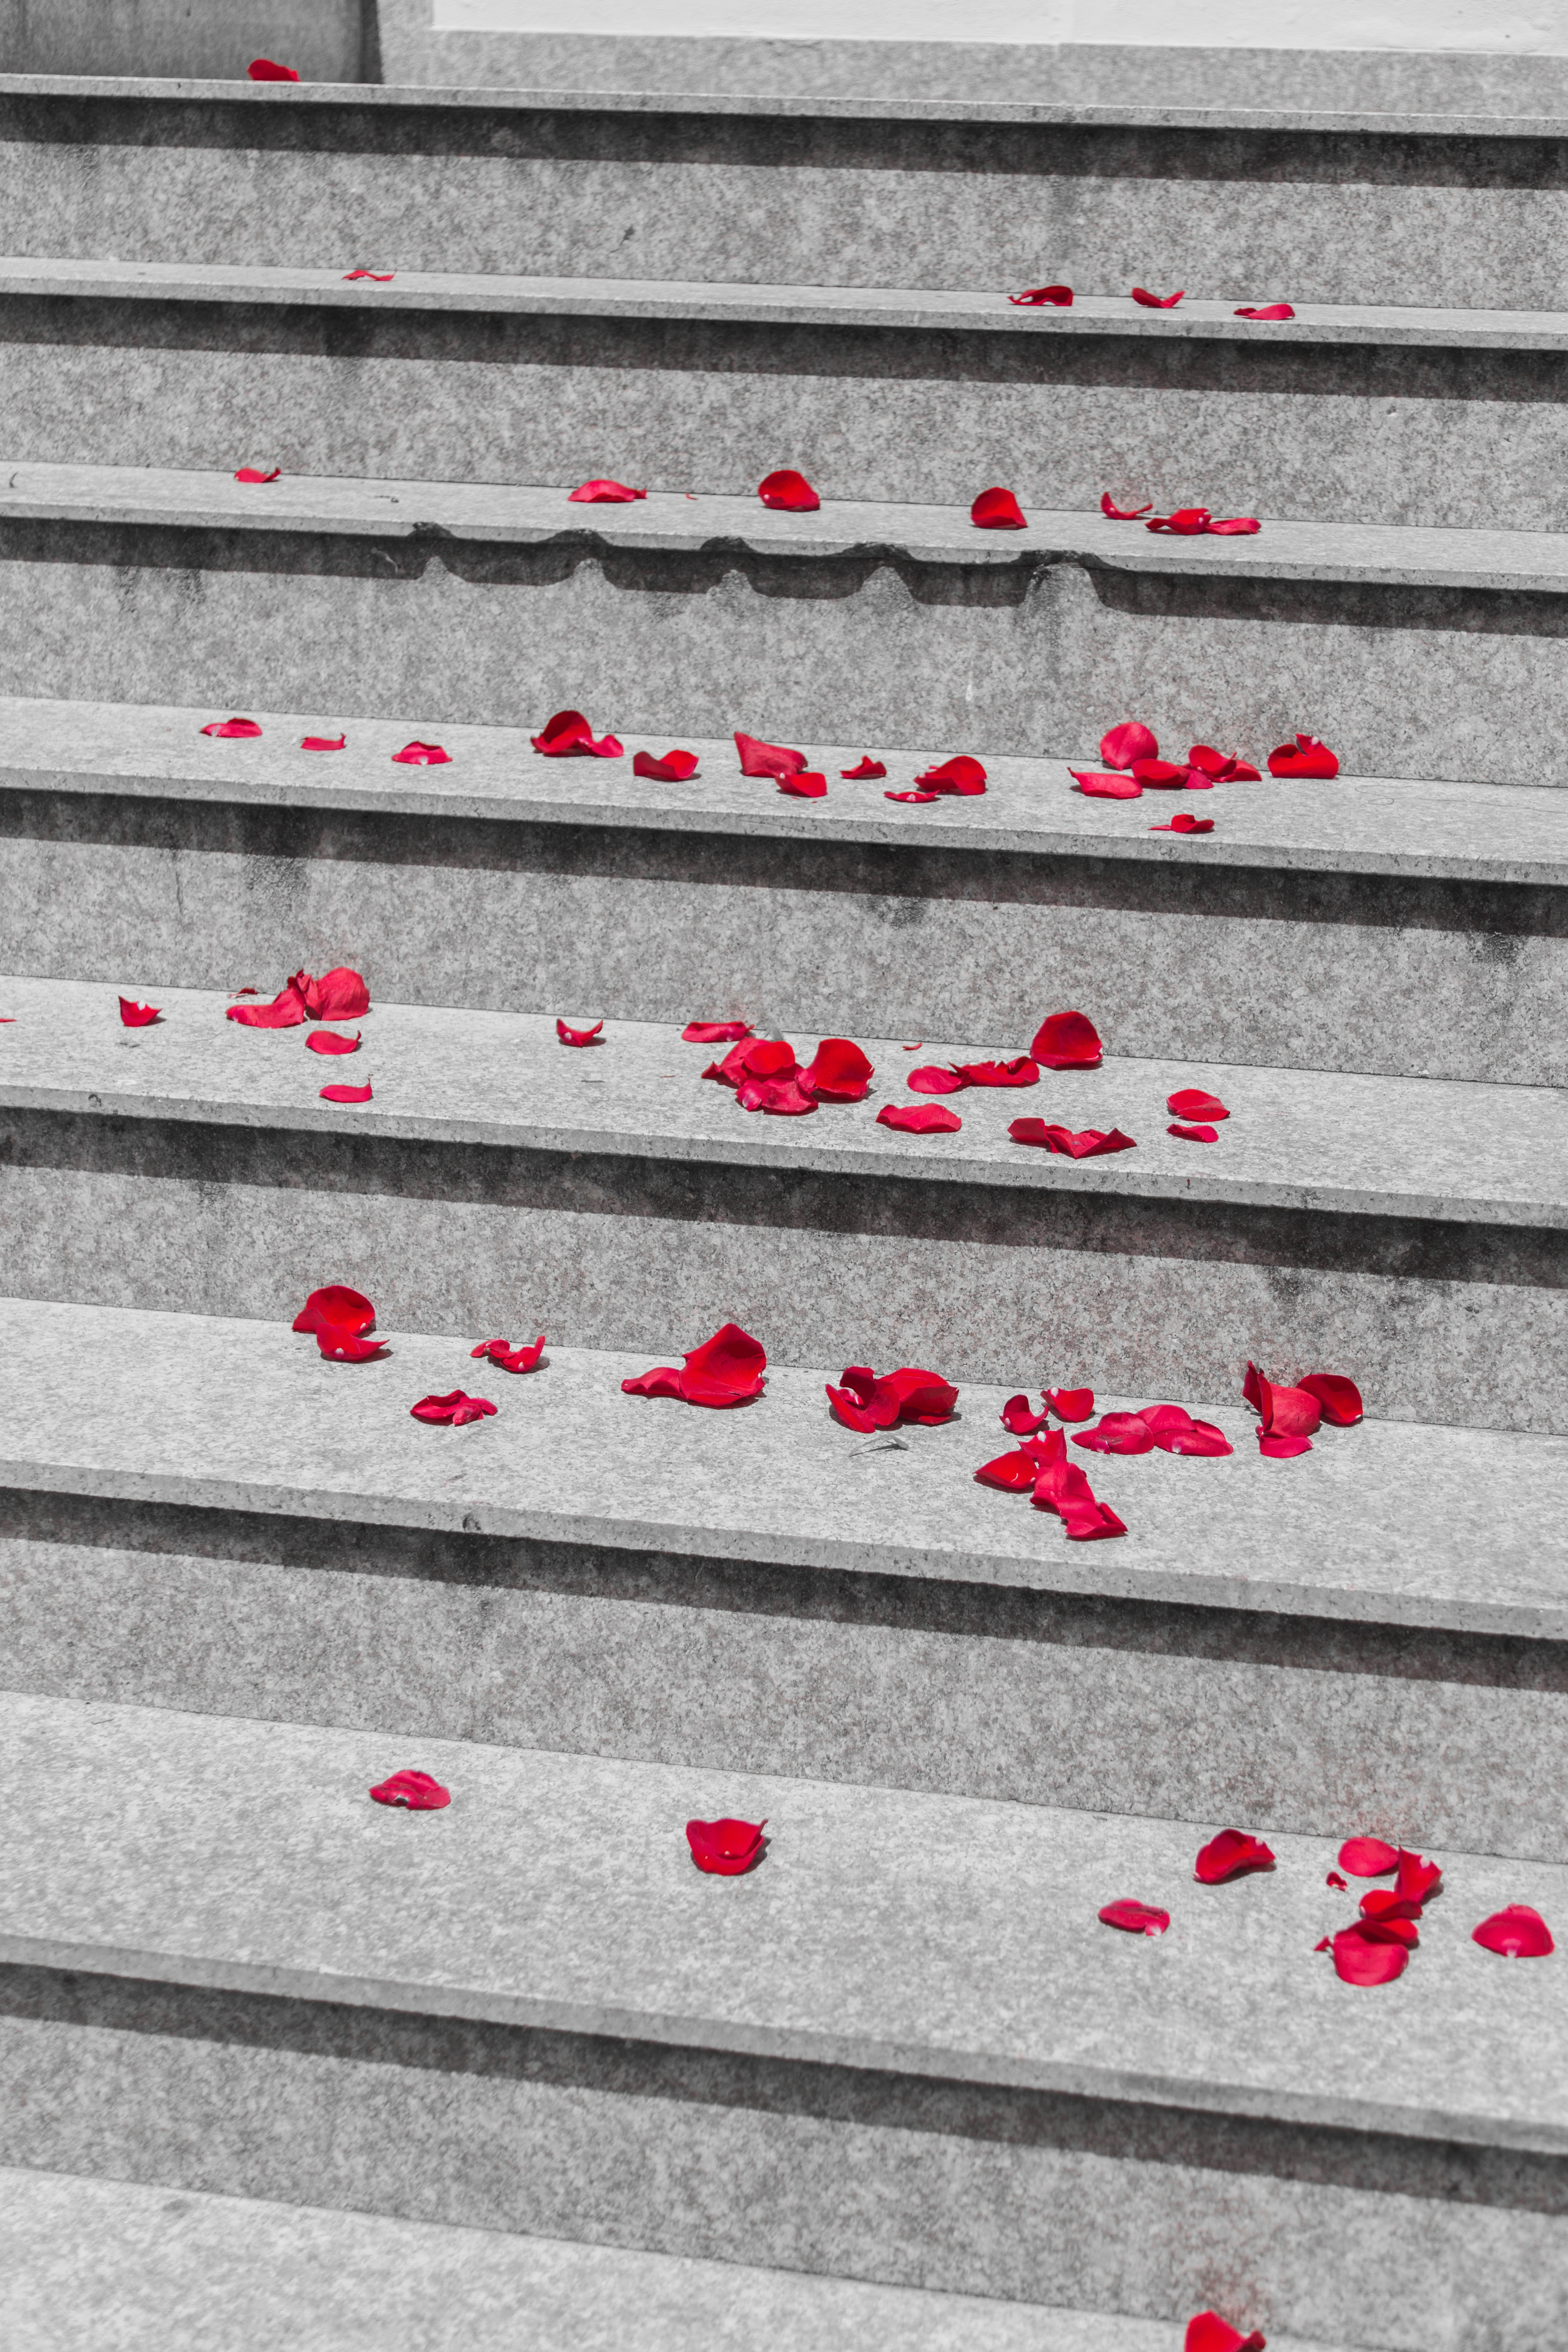 red rose petals on stairs